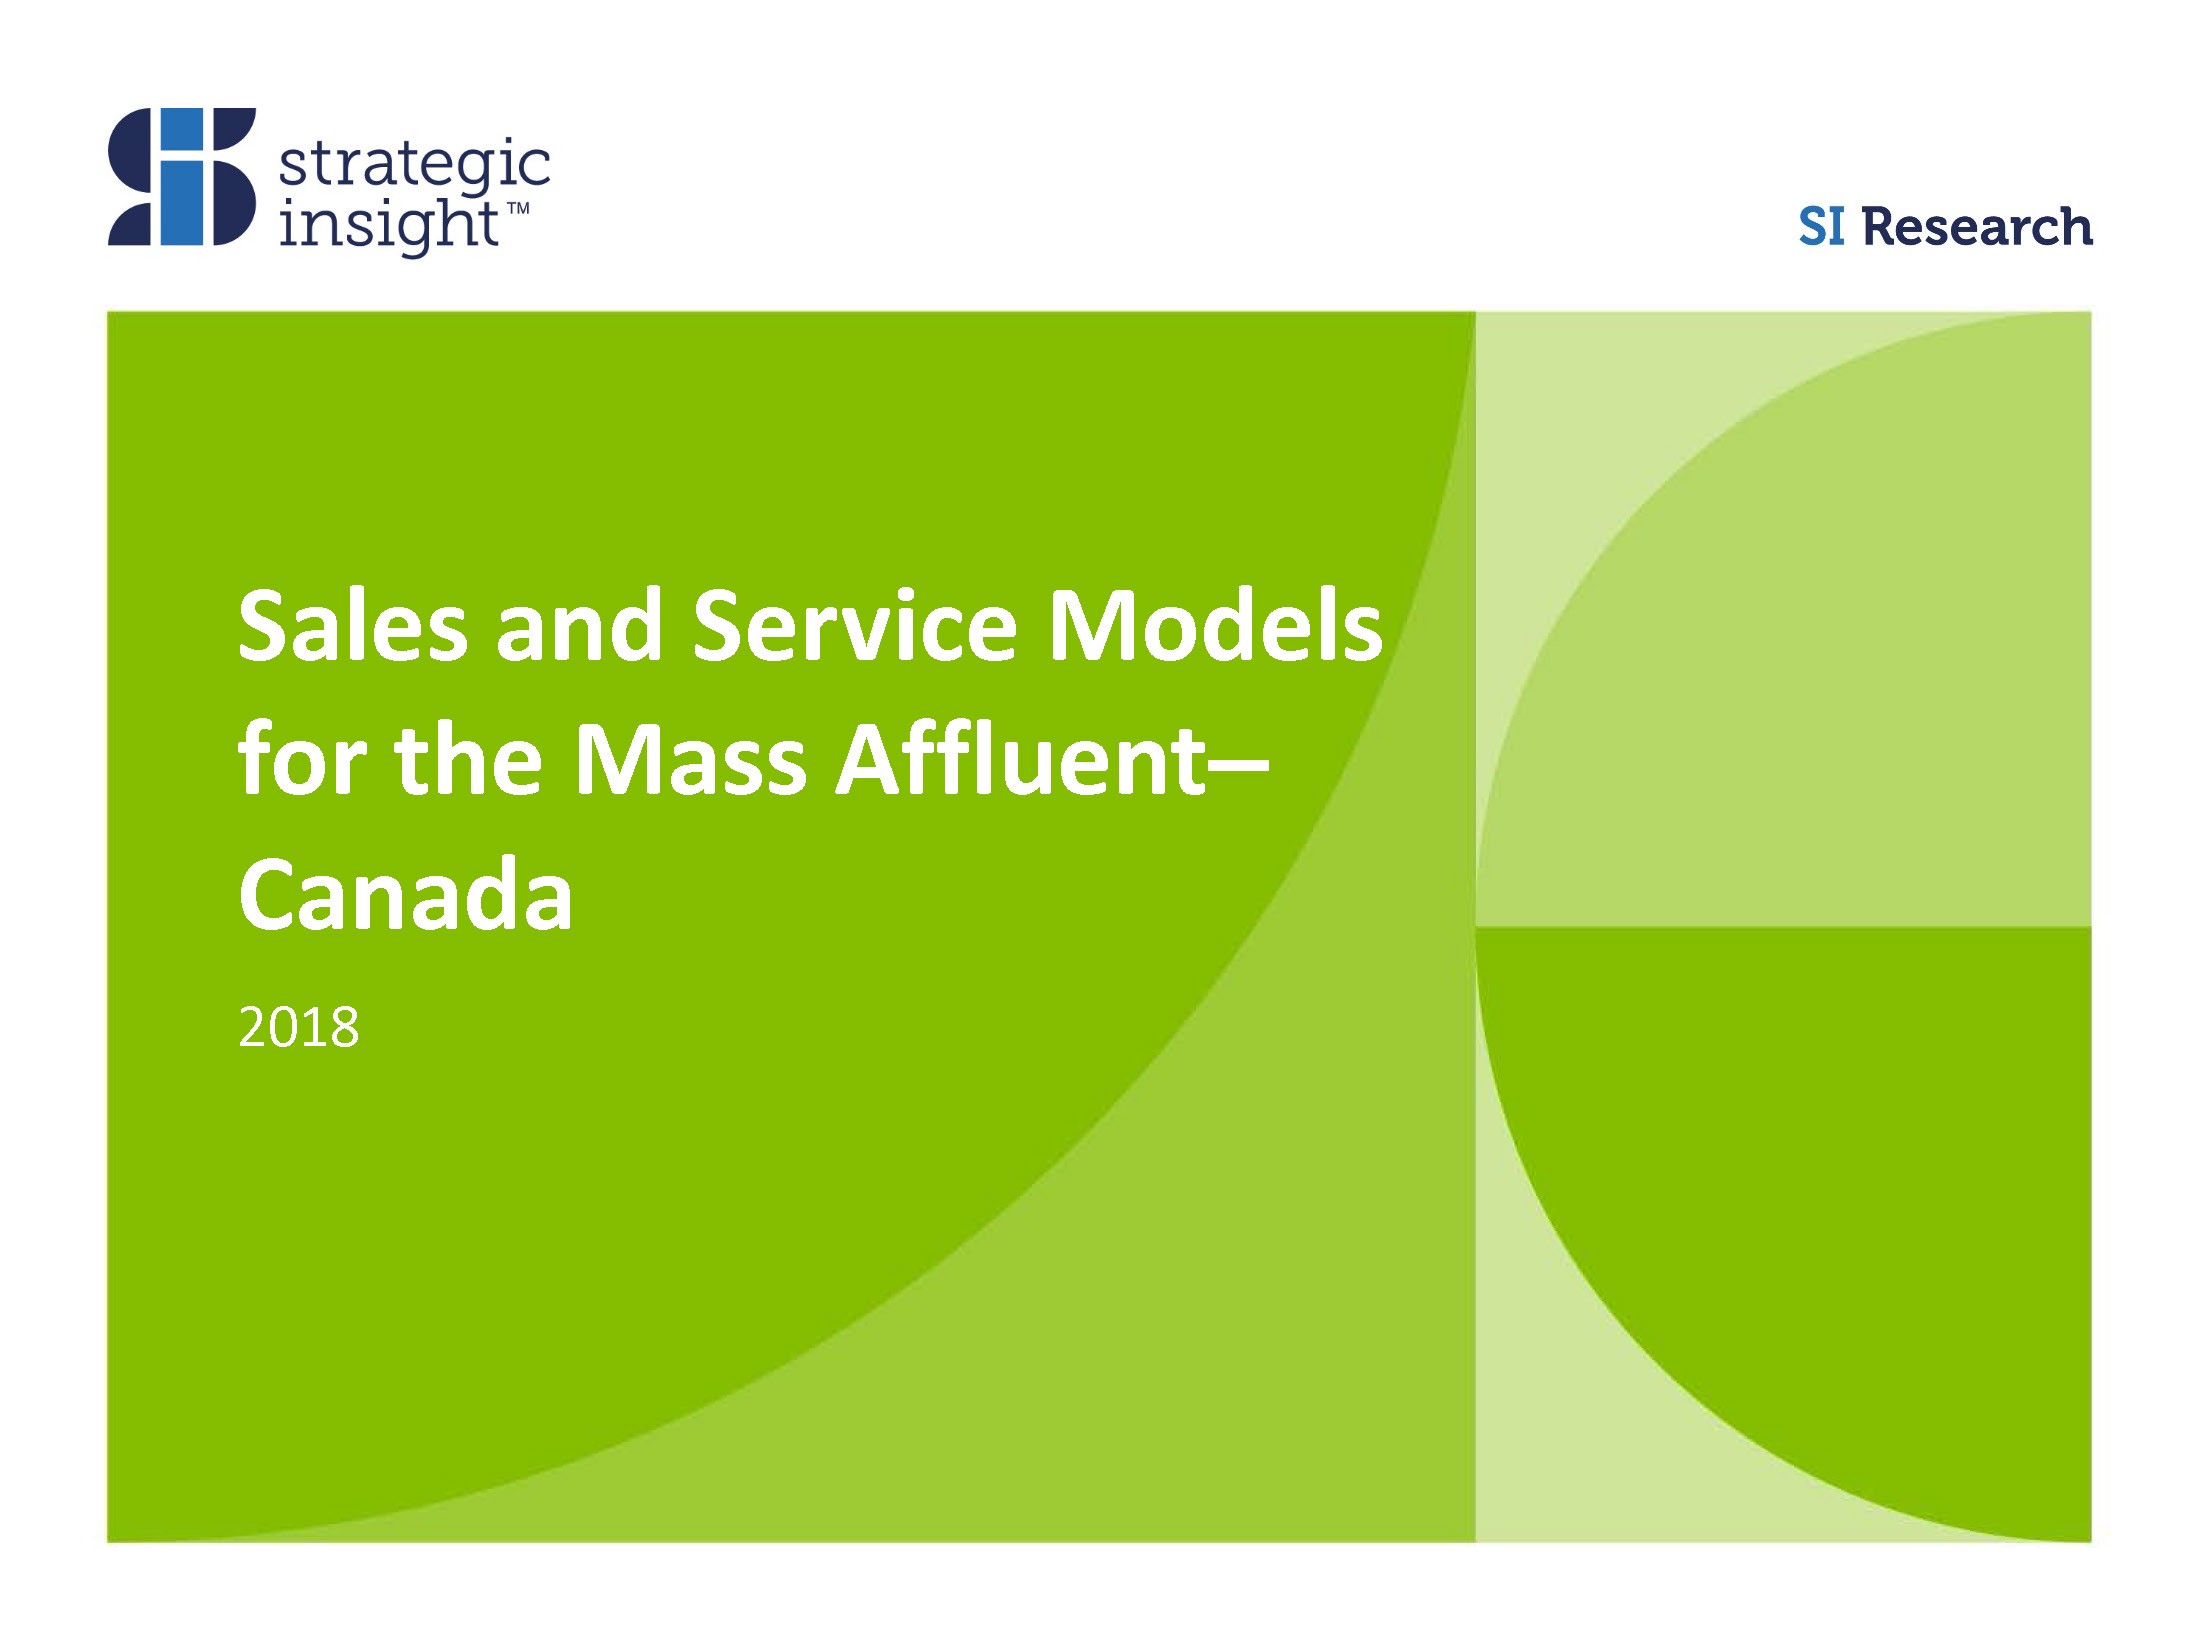 2018 Sales and Service Models for the Mass Affluent – Canada